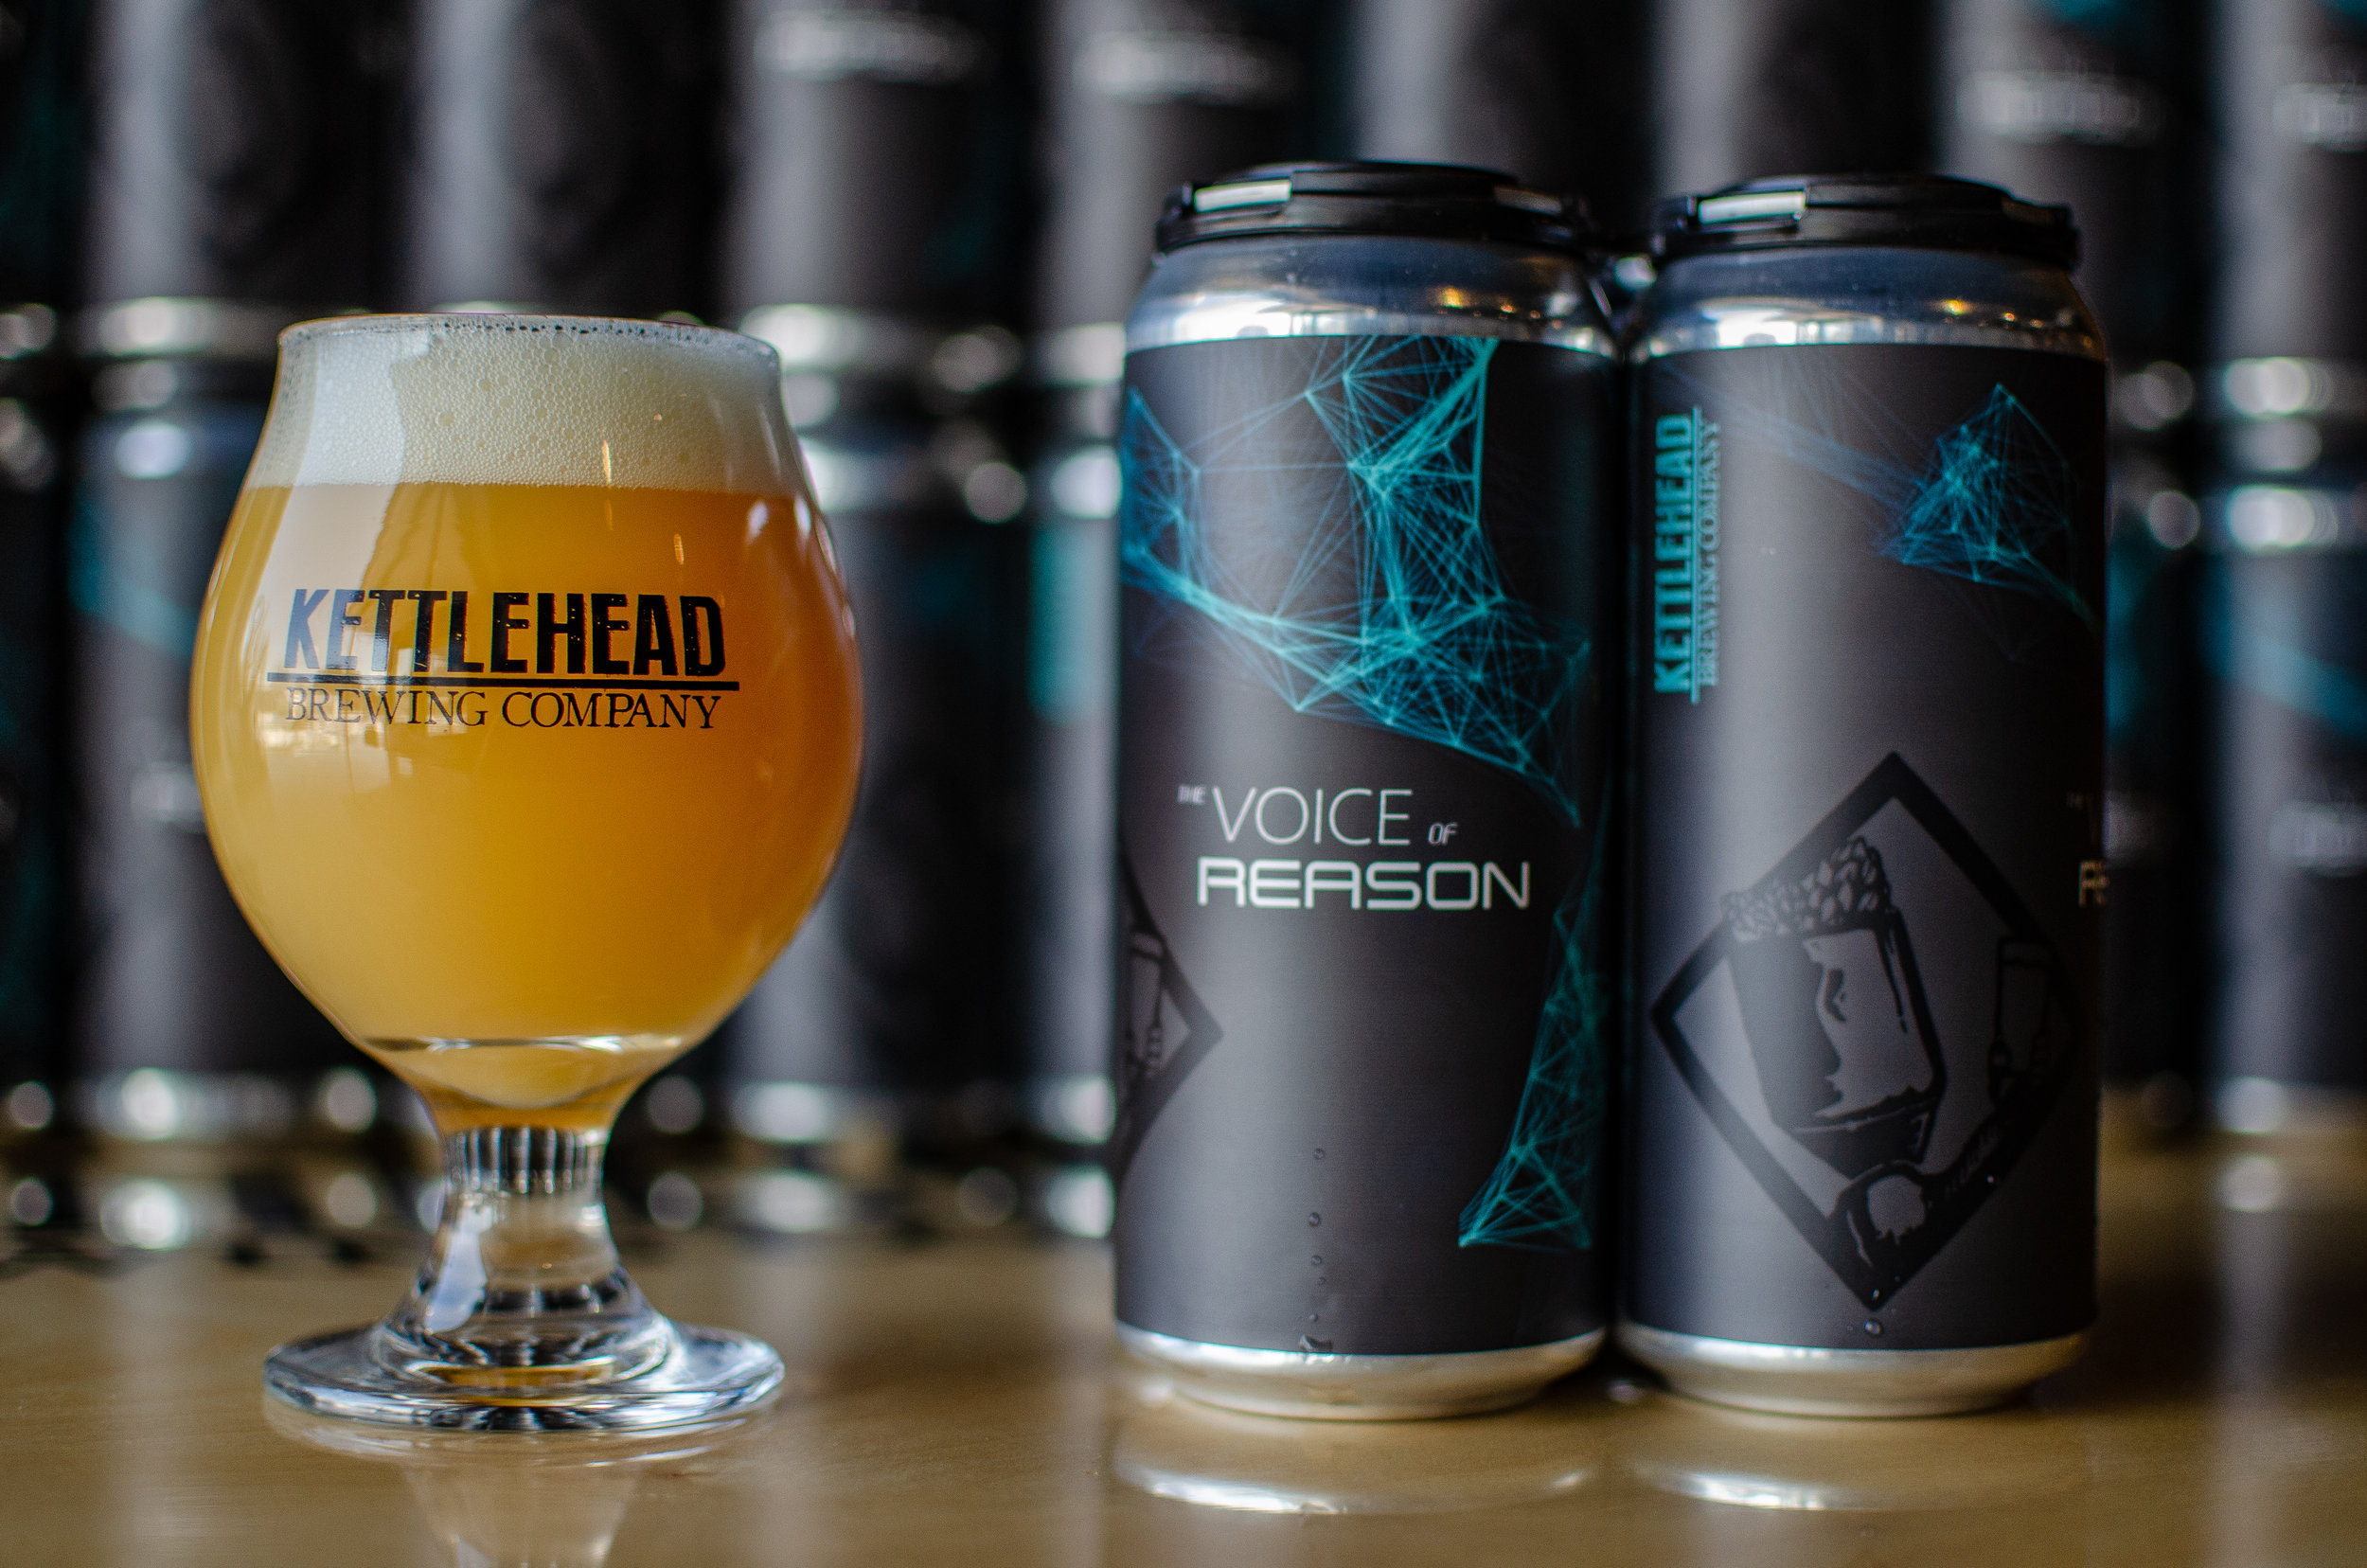 The Voice Of Reason, DIPA -  DIPA with a massive addition of New Zealand hops producing notes of lime and tropical fruits. 8% abv